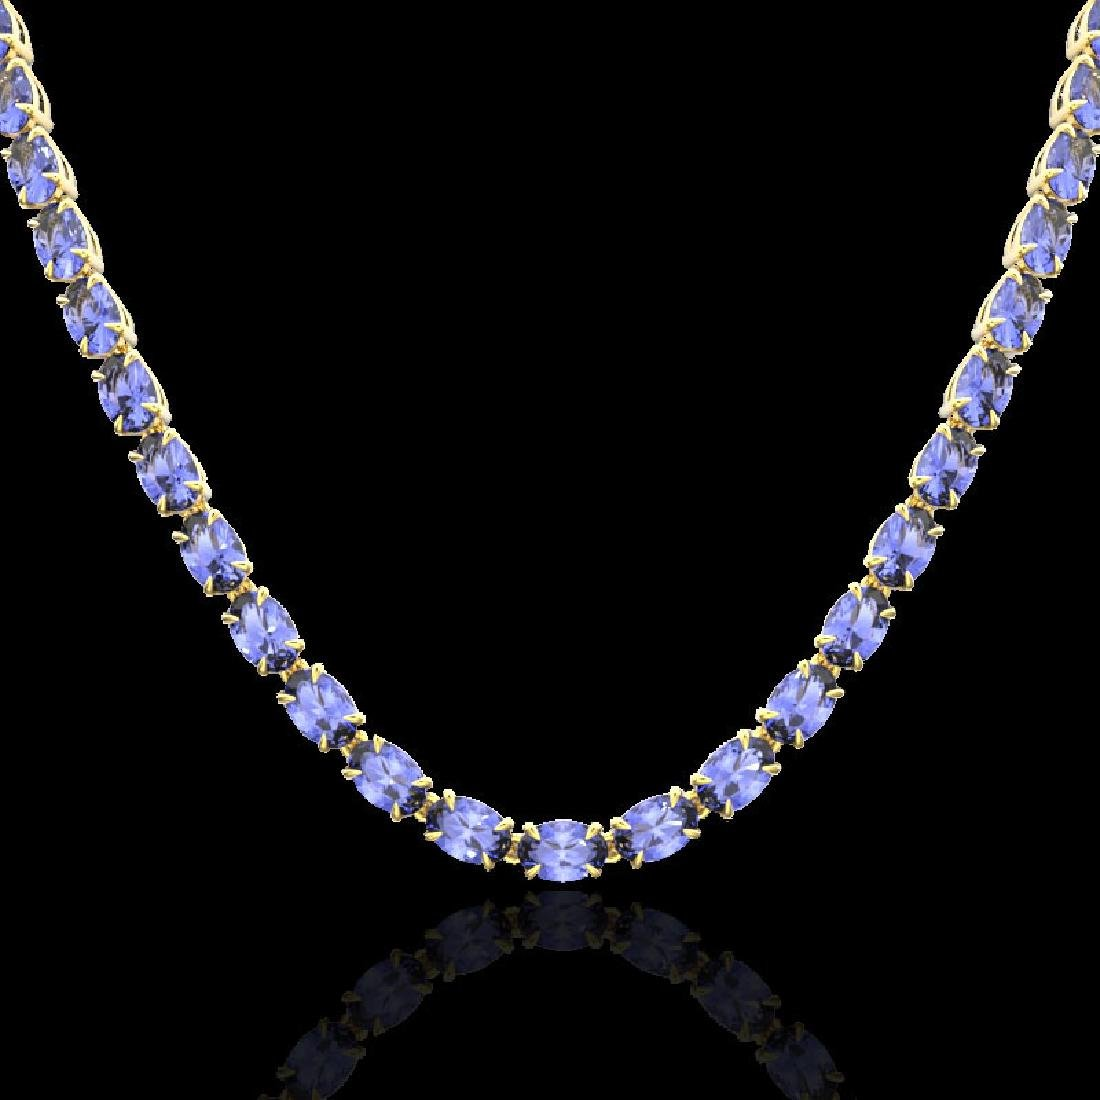 40 CTW Tanzanite Eternity Tennis Necklace 14K Yellow - 2